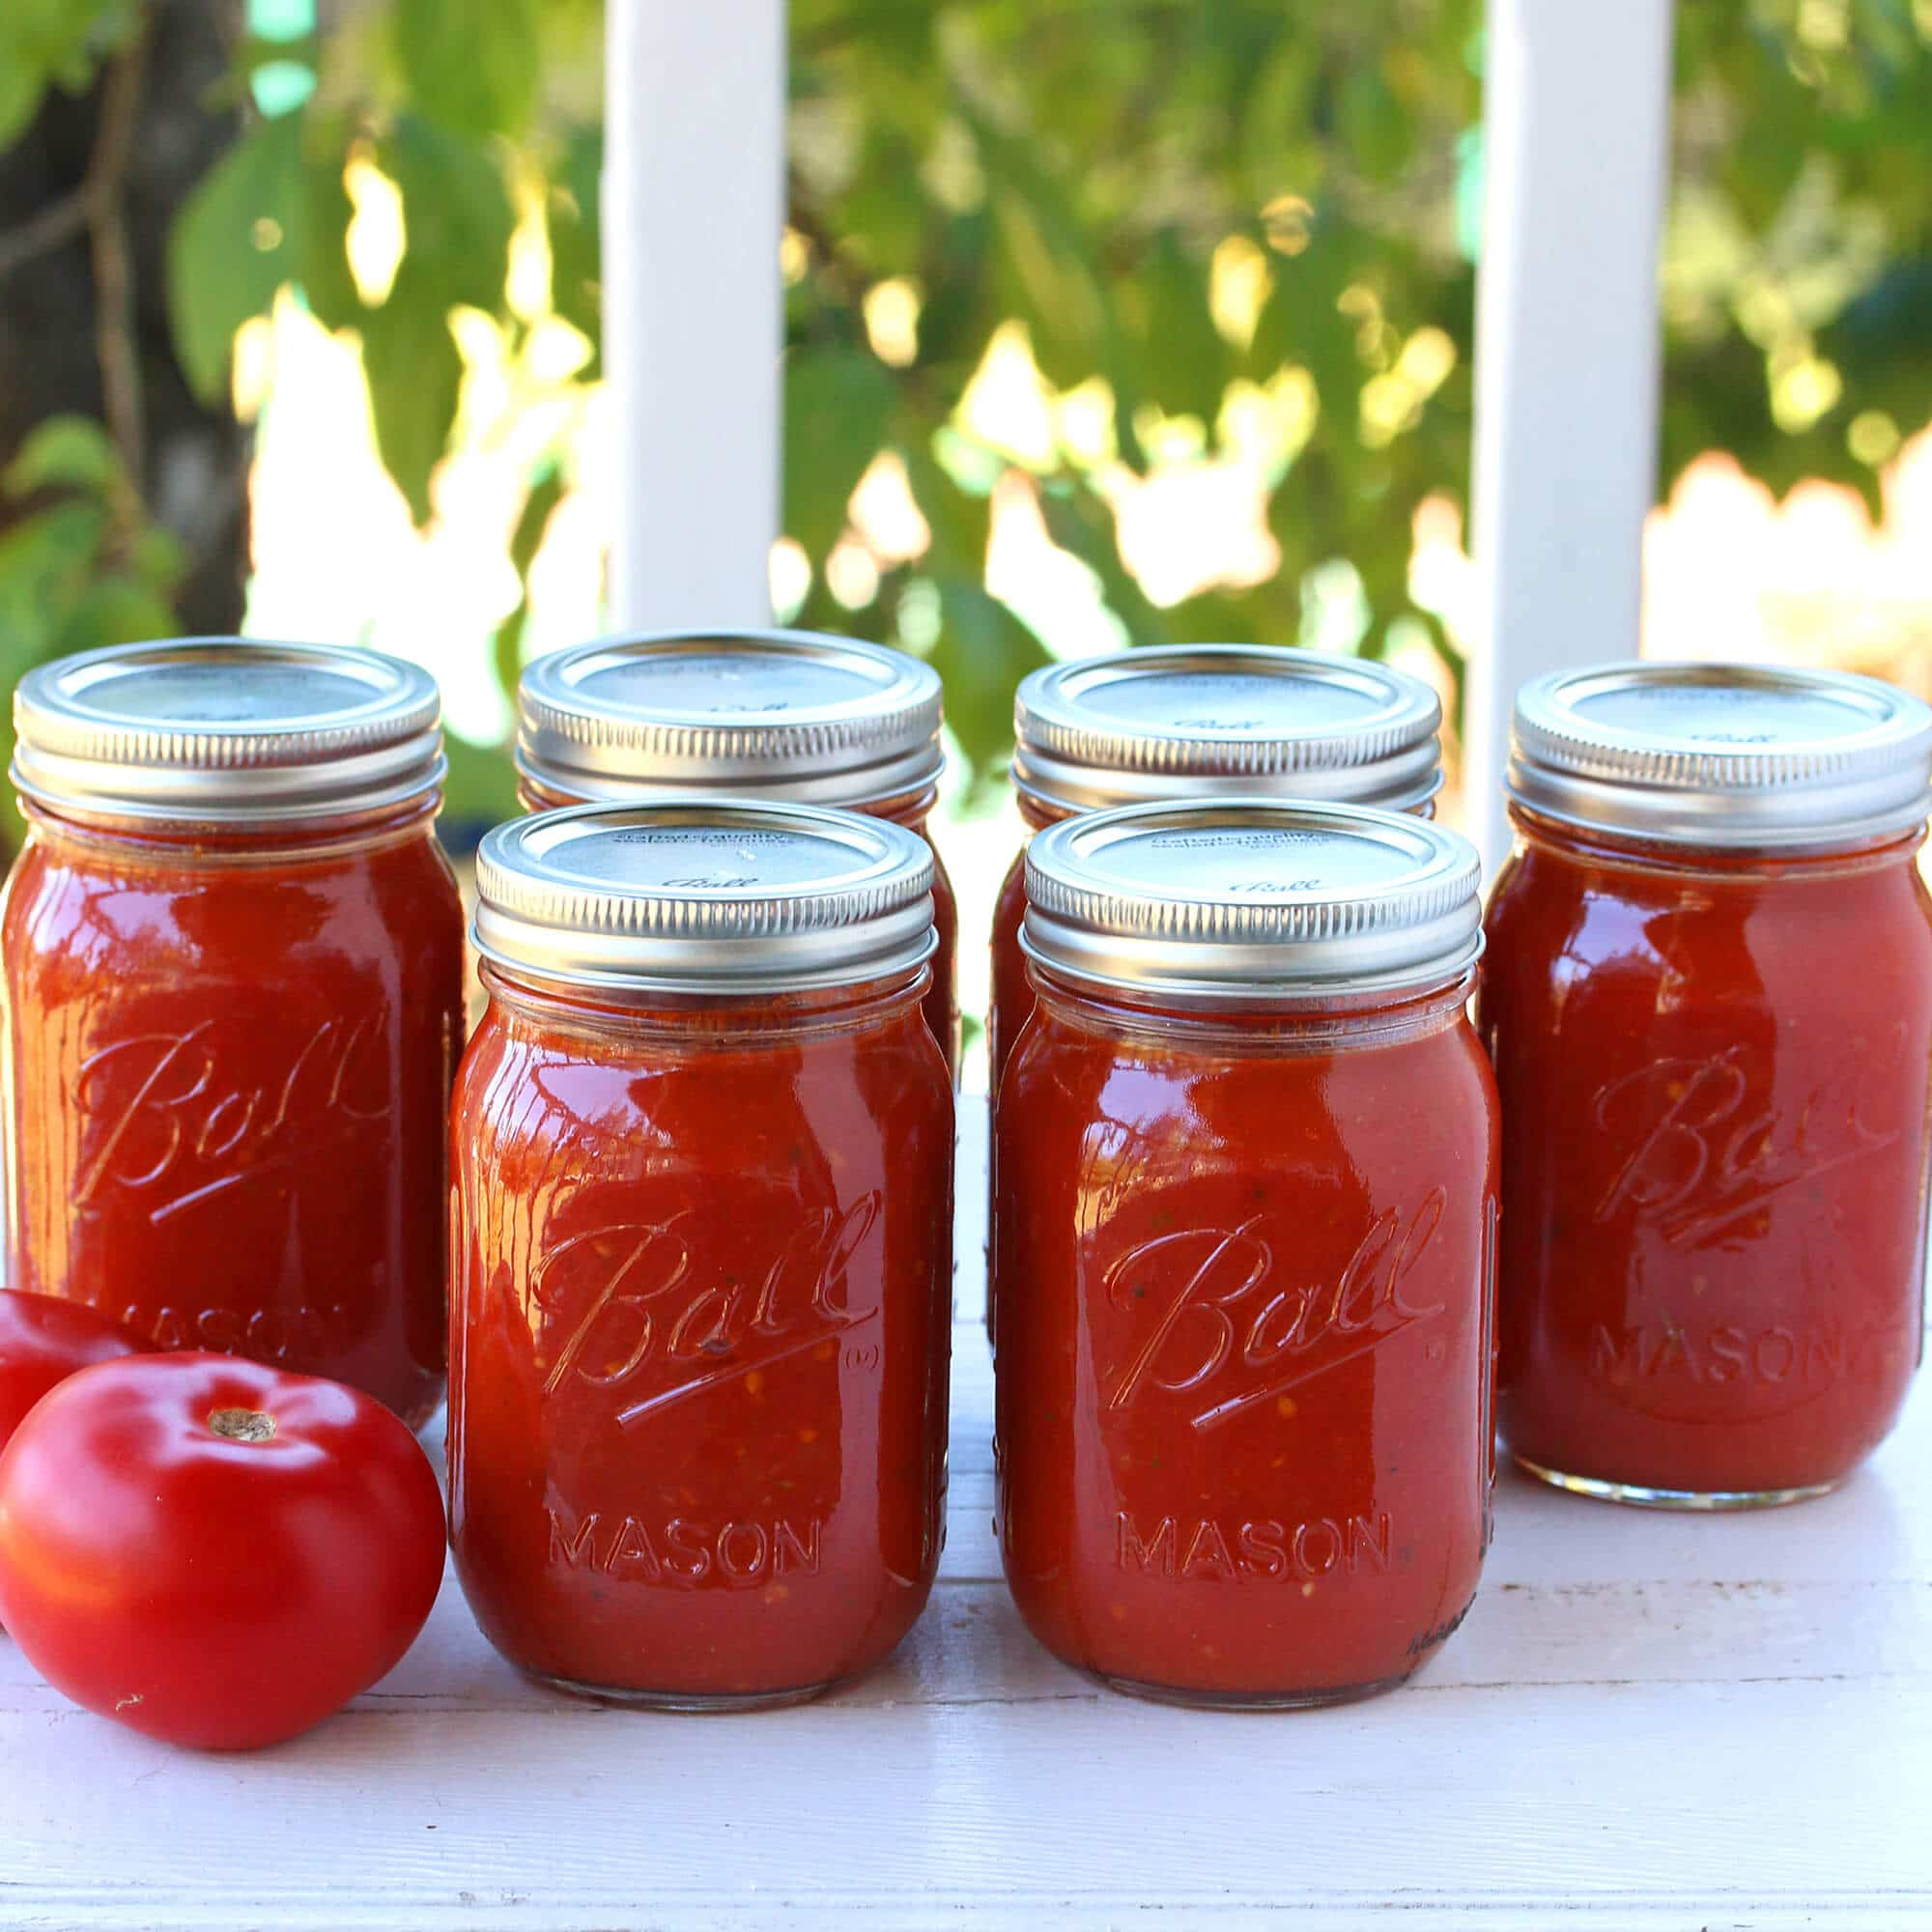 best marinara sauce recipe canning preserving tomato italian authentic traditional